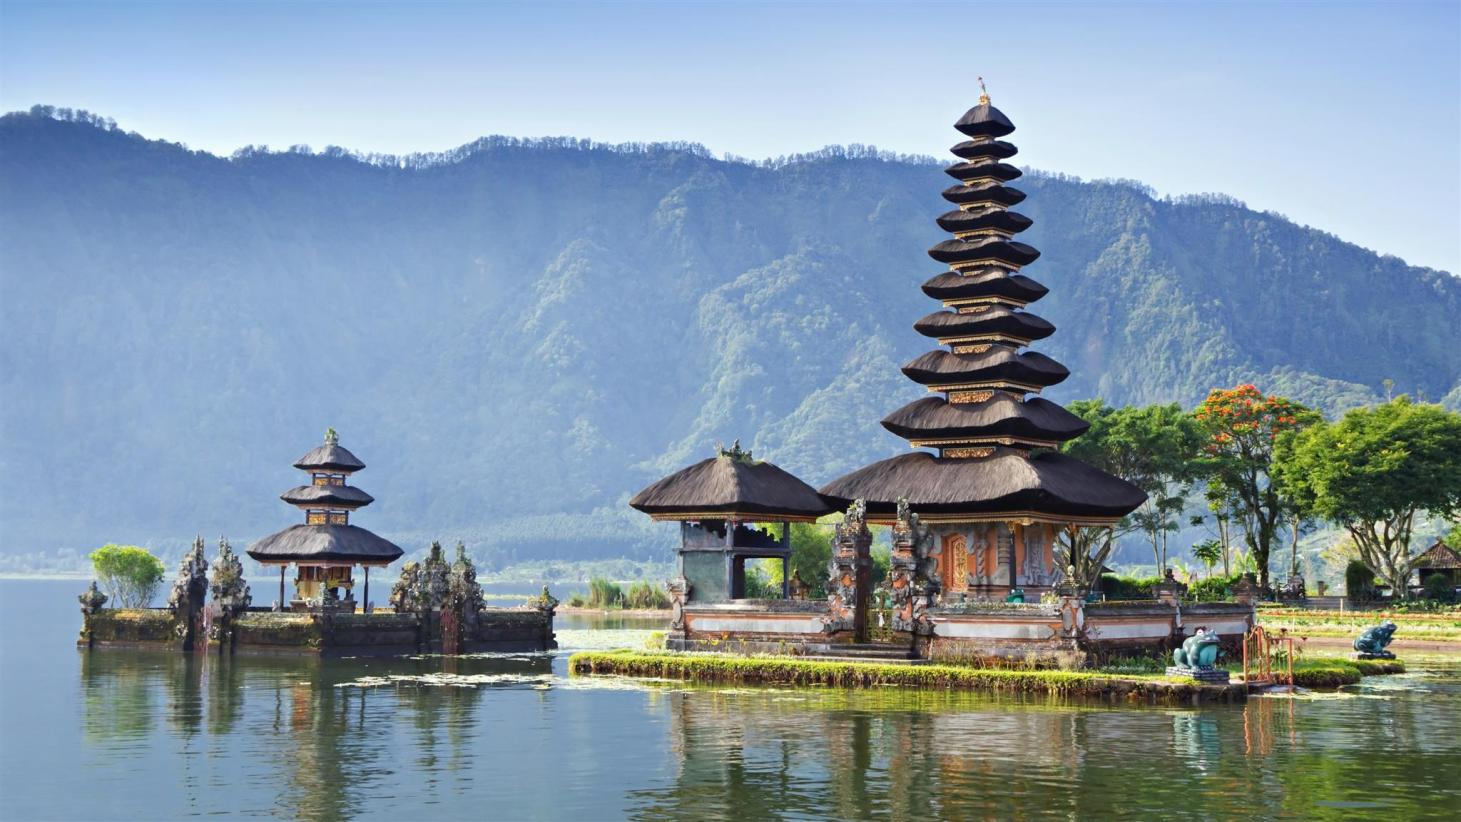 10 Best Bali Hotels Hd Photos Reviews Of Hotels In Bali